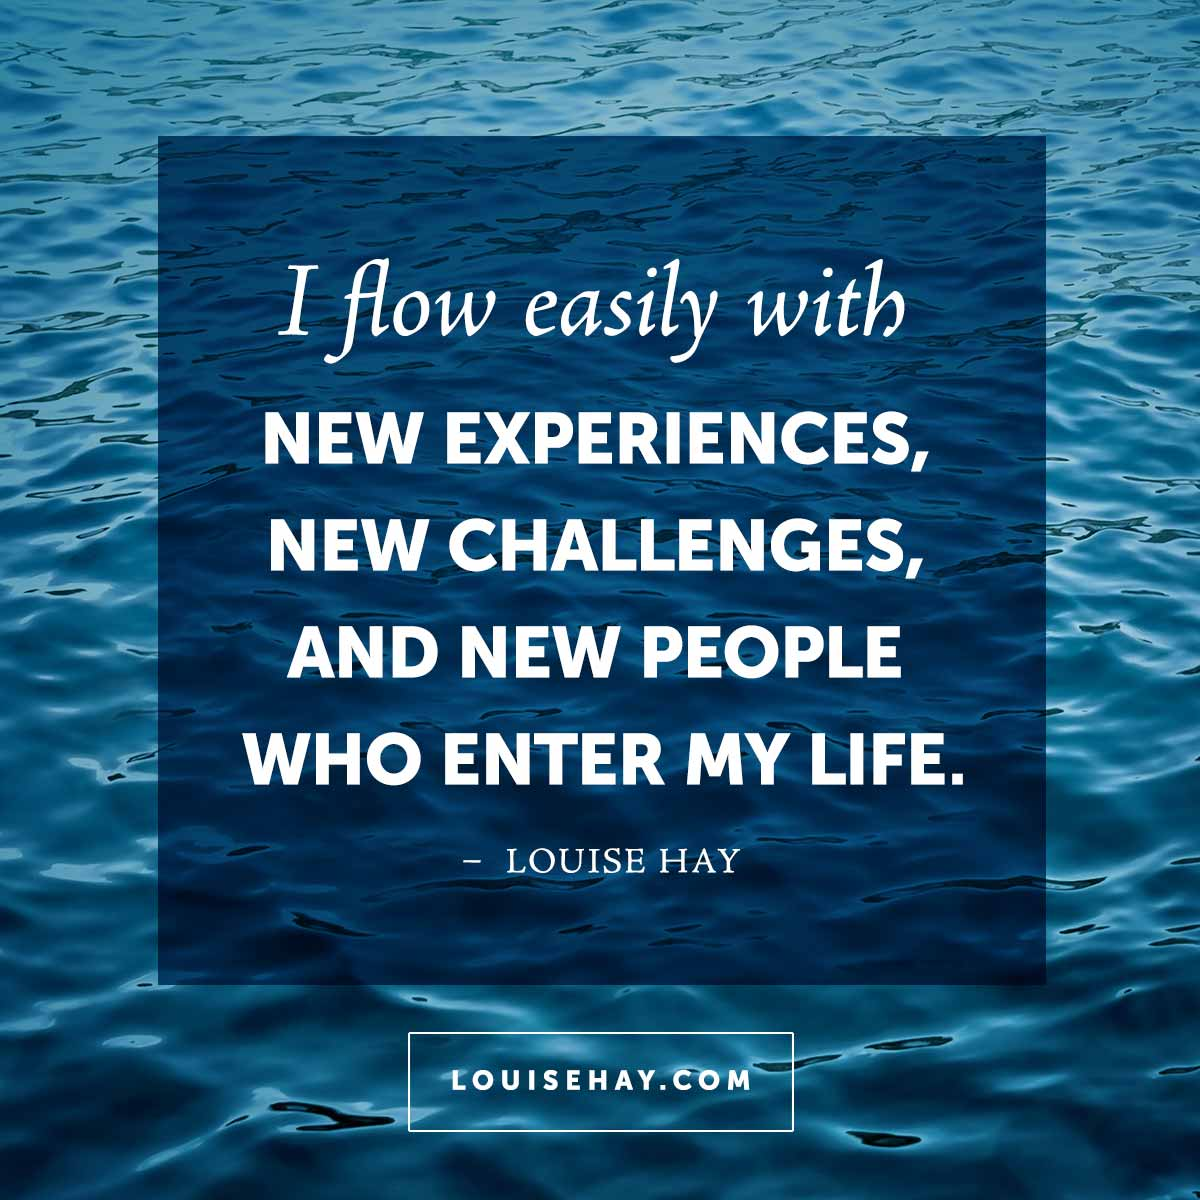 Inspirational Quotes about  | I flow easily with new experiences, new challenges, and new people who enter my life. — Louise Hay